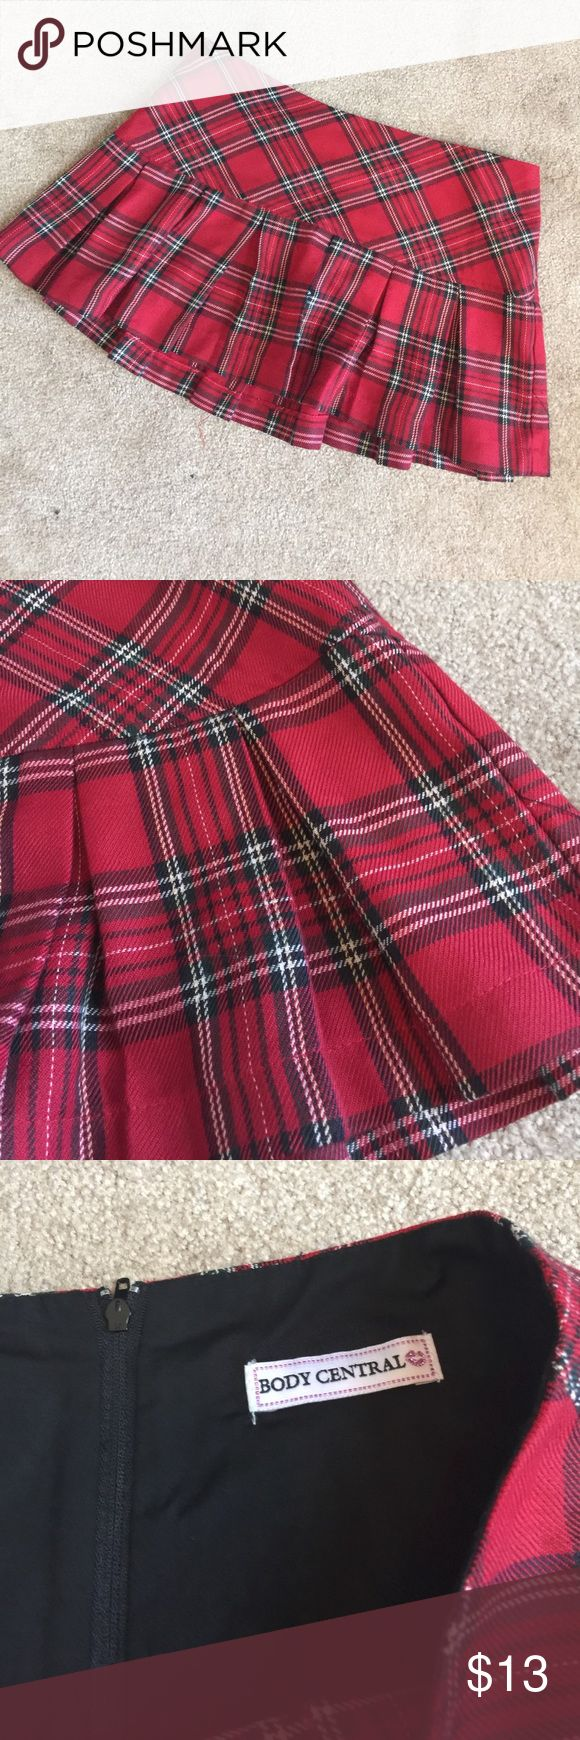 Red plaid pleated skirt Zipper back skirt. 11 inches long. 100% polyester. LB Body Central Skirts Mini